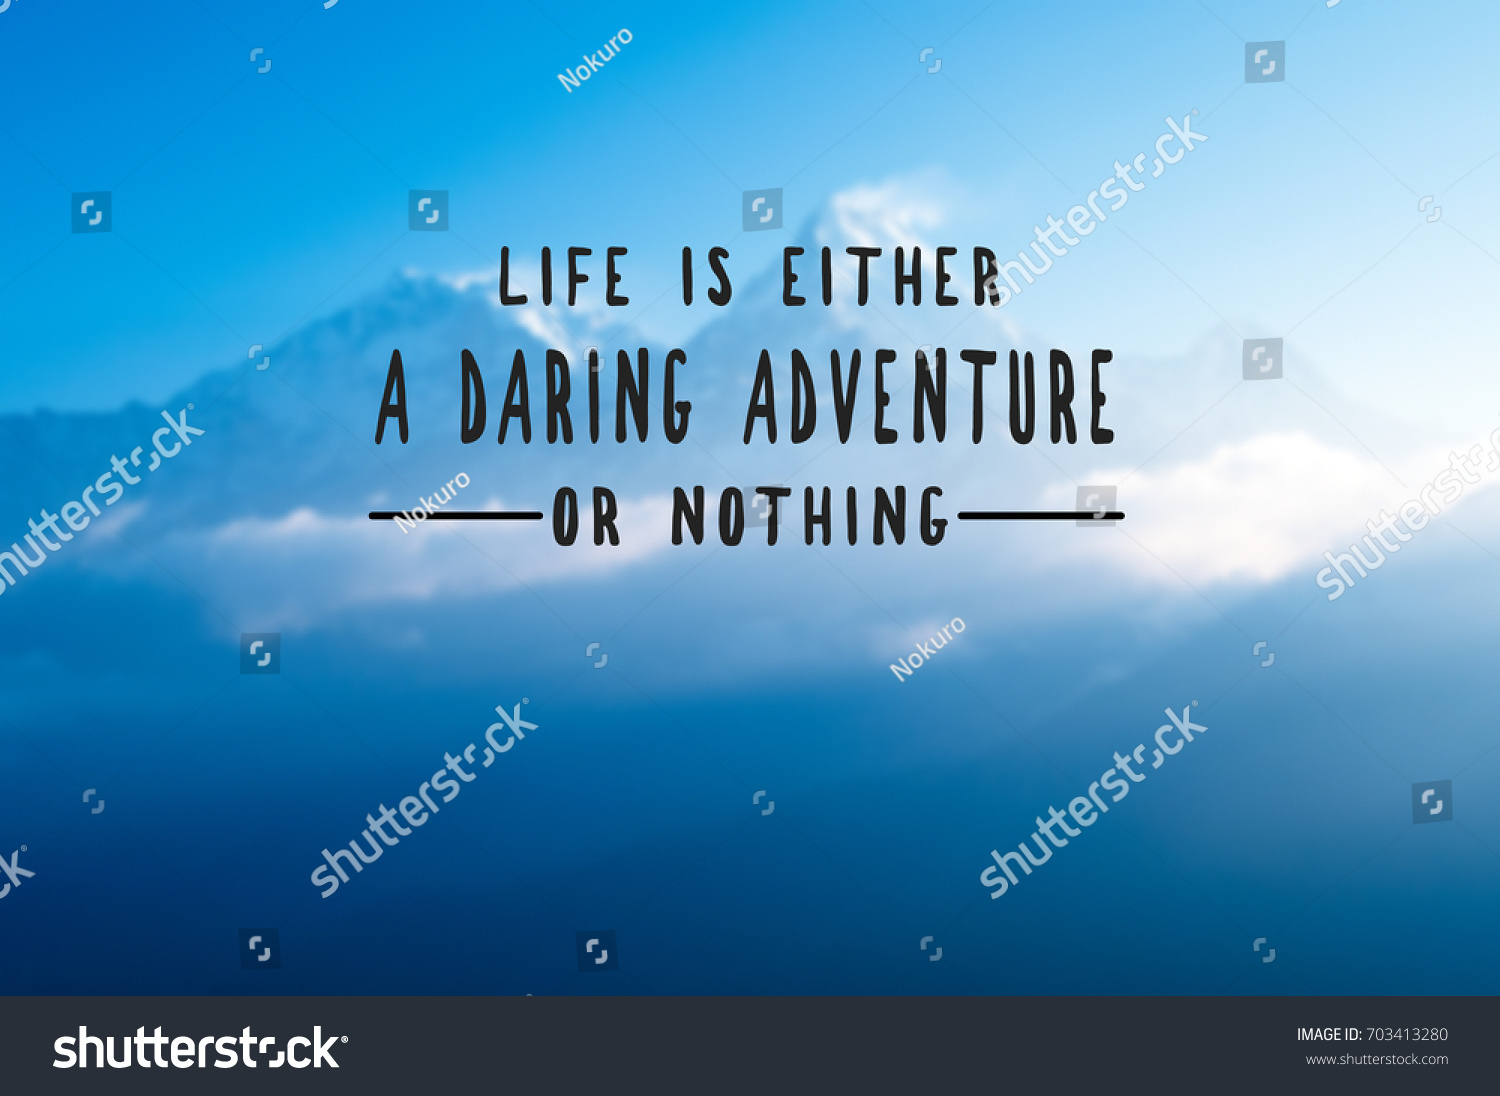 Inspirational Quote About Life Inspirational Quotes Life Either Daring Adventure Stock Photo